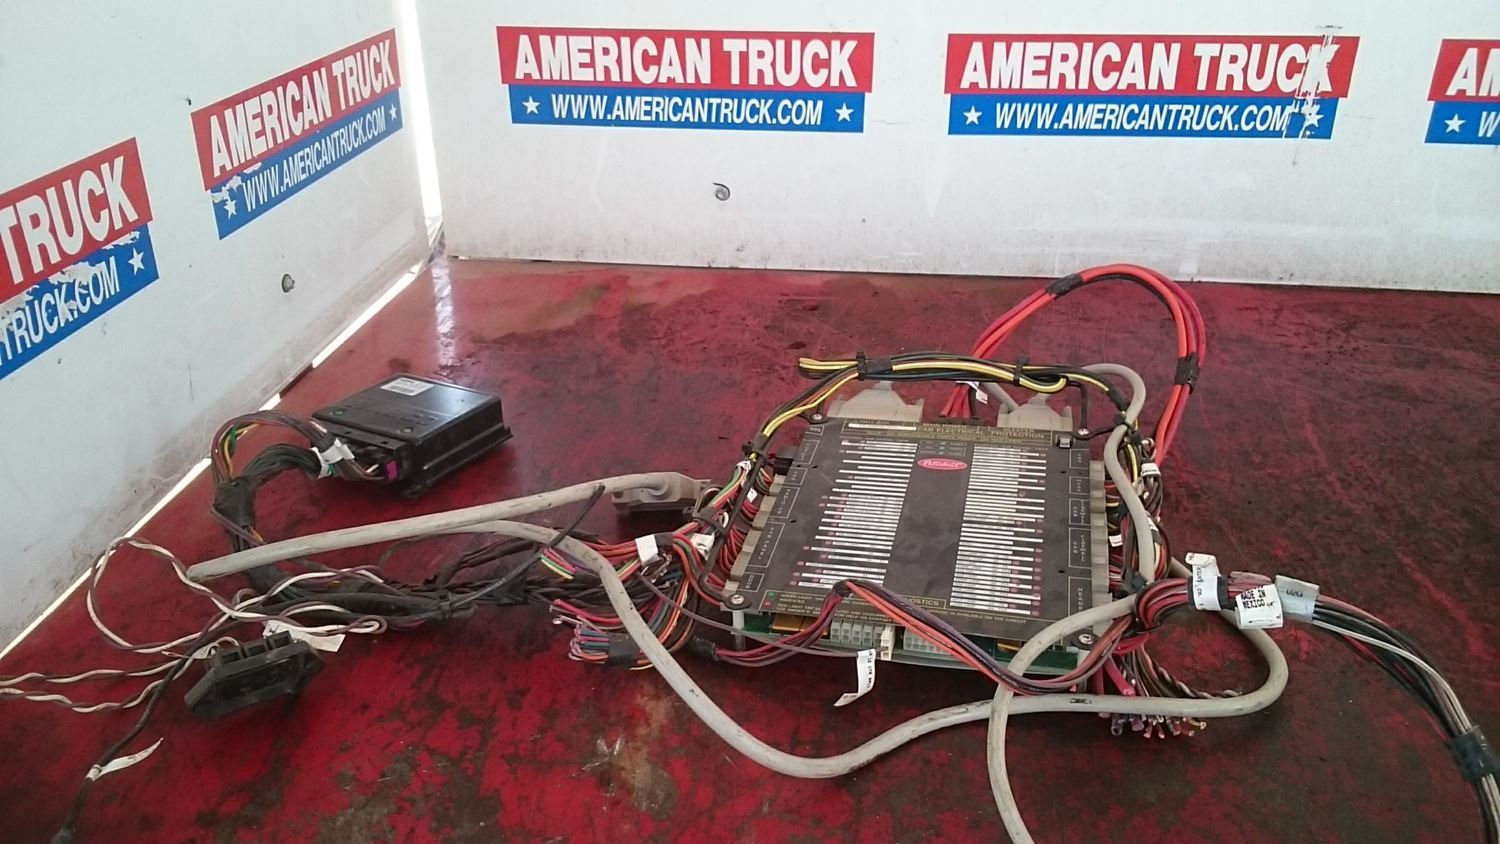 Peterbilt 386 Headlight Wiring Diagram moreover Peterbilt 388 Fuse Location likewise Peterbilt 389 P103 Harness Wiring together with 1996 Kenworth T800 Wiring Diagrams 2005 Fuse Panel as well Peterbilt 359 Wiring Diagram Get Free Image About. on 4cuyg blower dont work sleeper 1998 379